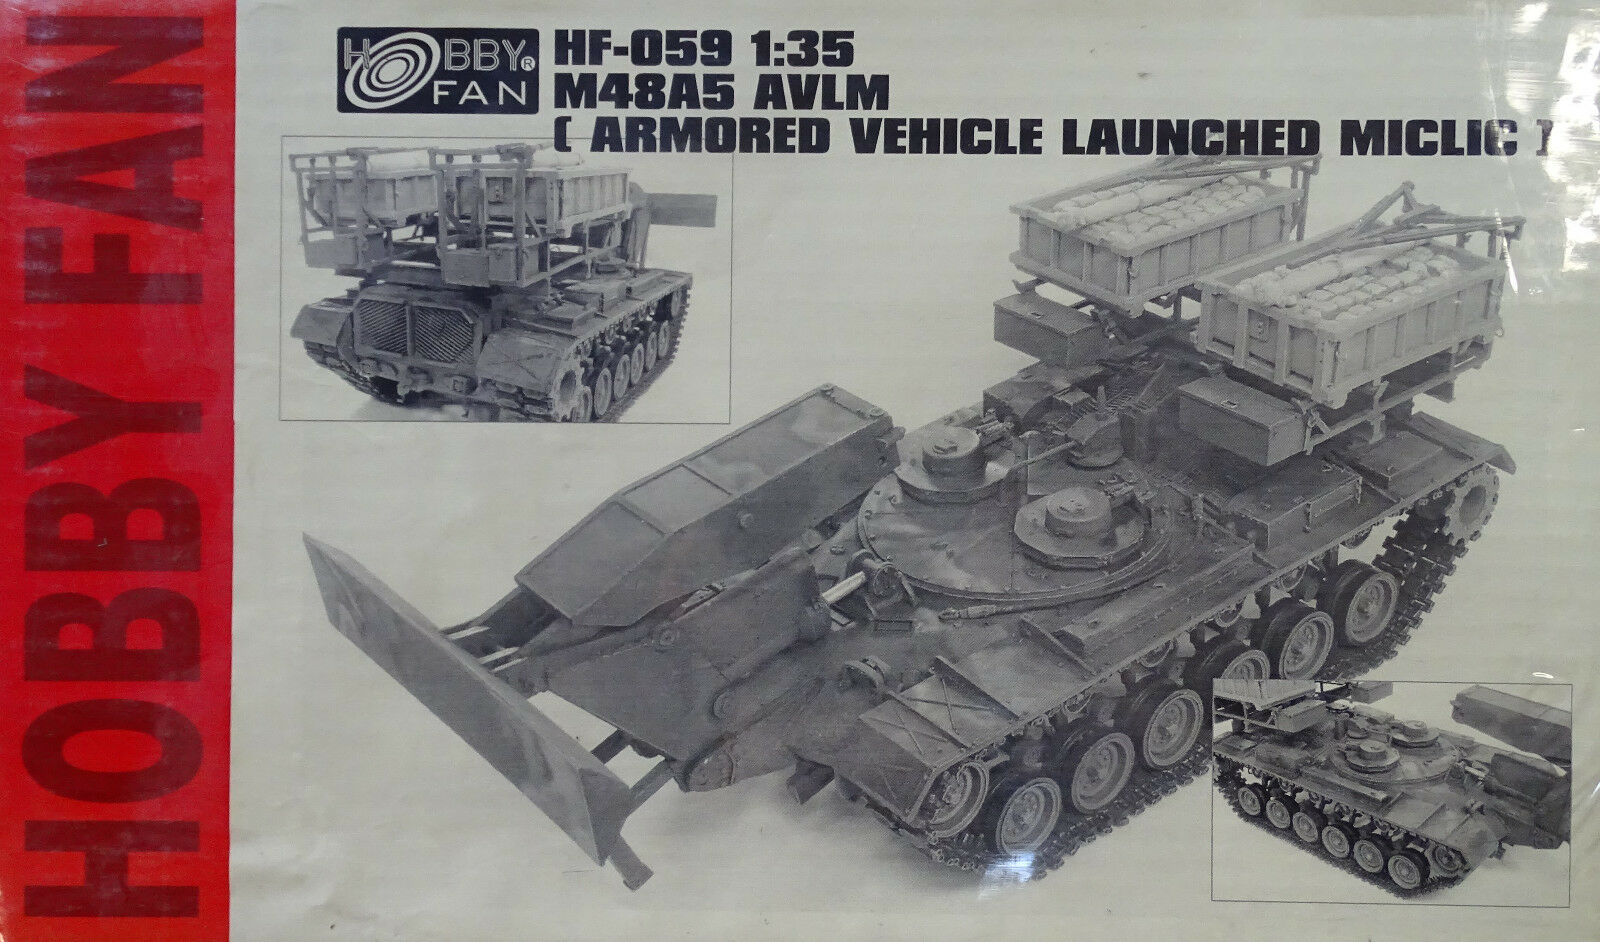 HOBBY FAN® HF059 M48A5 AVLM ArmGoldt Vehicle Launched MICLIC in 1 35  | Sonderpreis